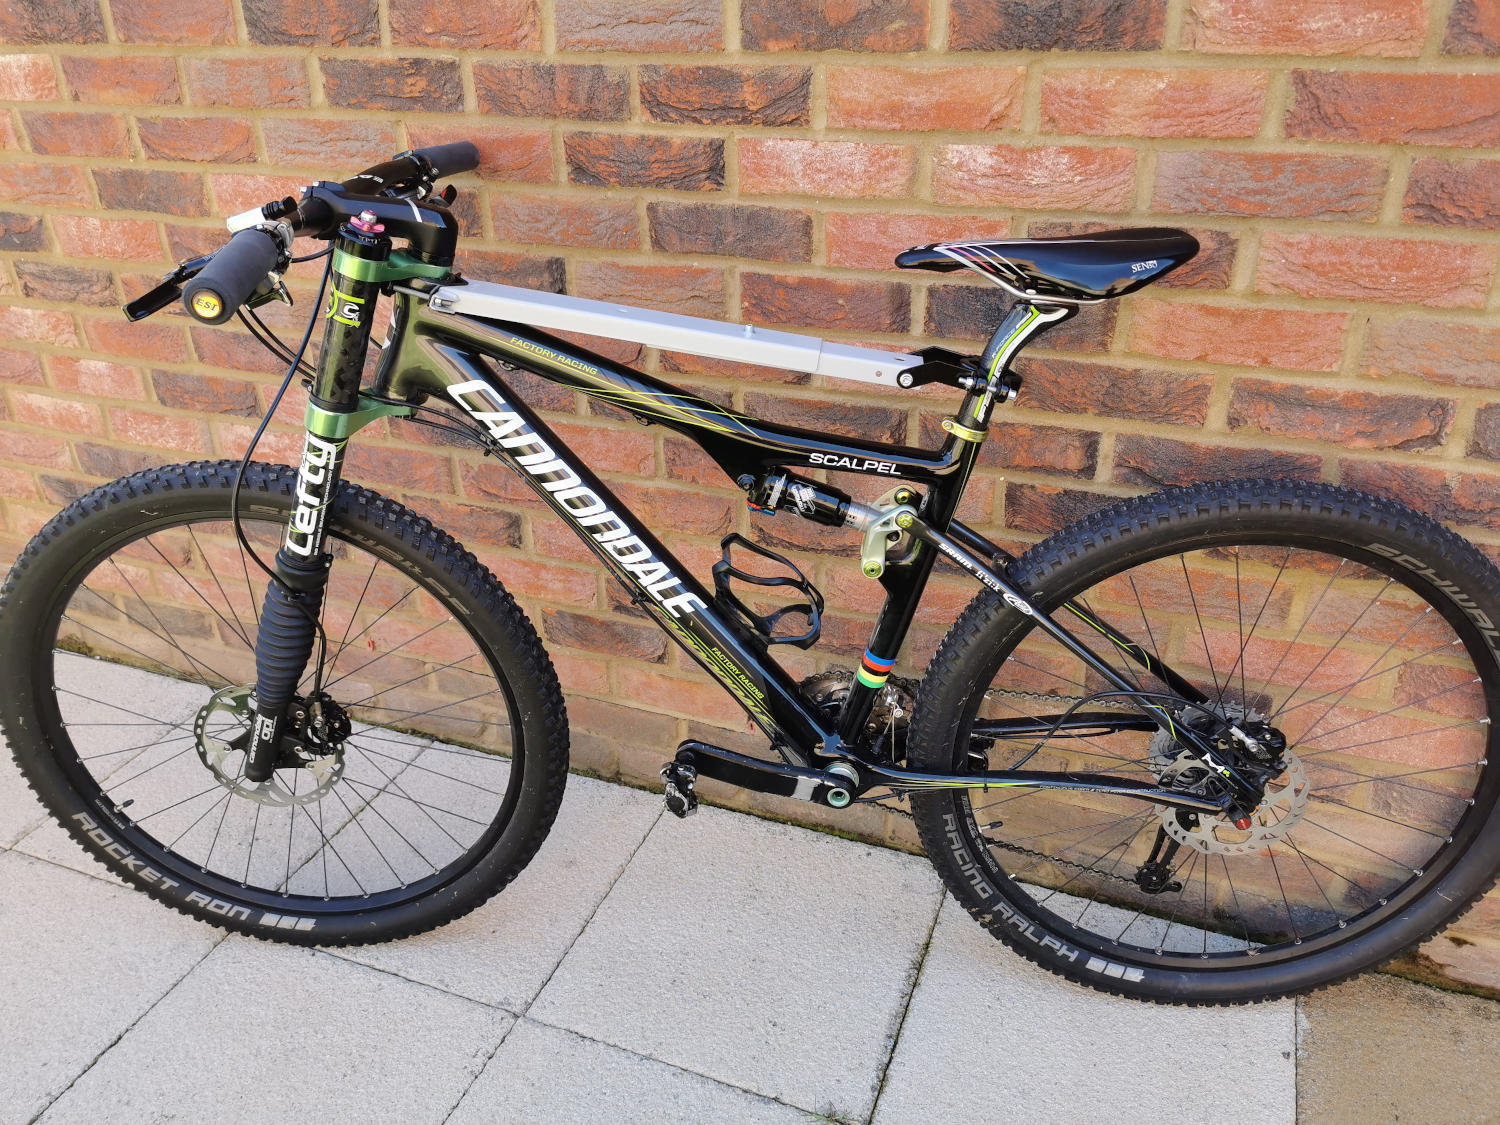 Mountain bike with a child seat carrier